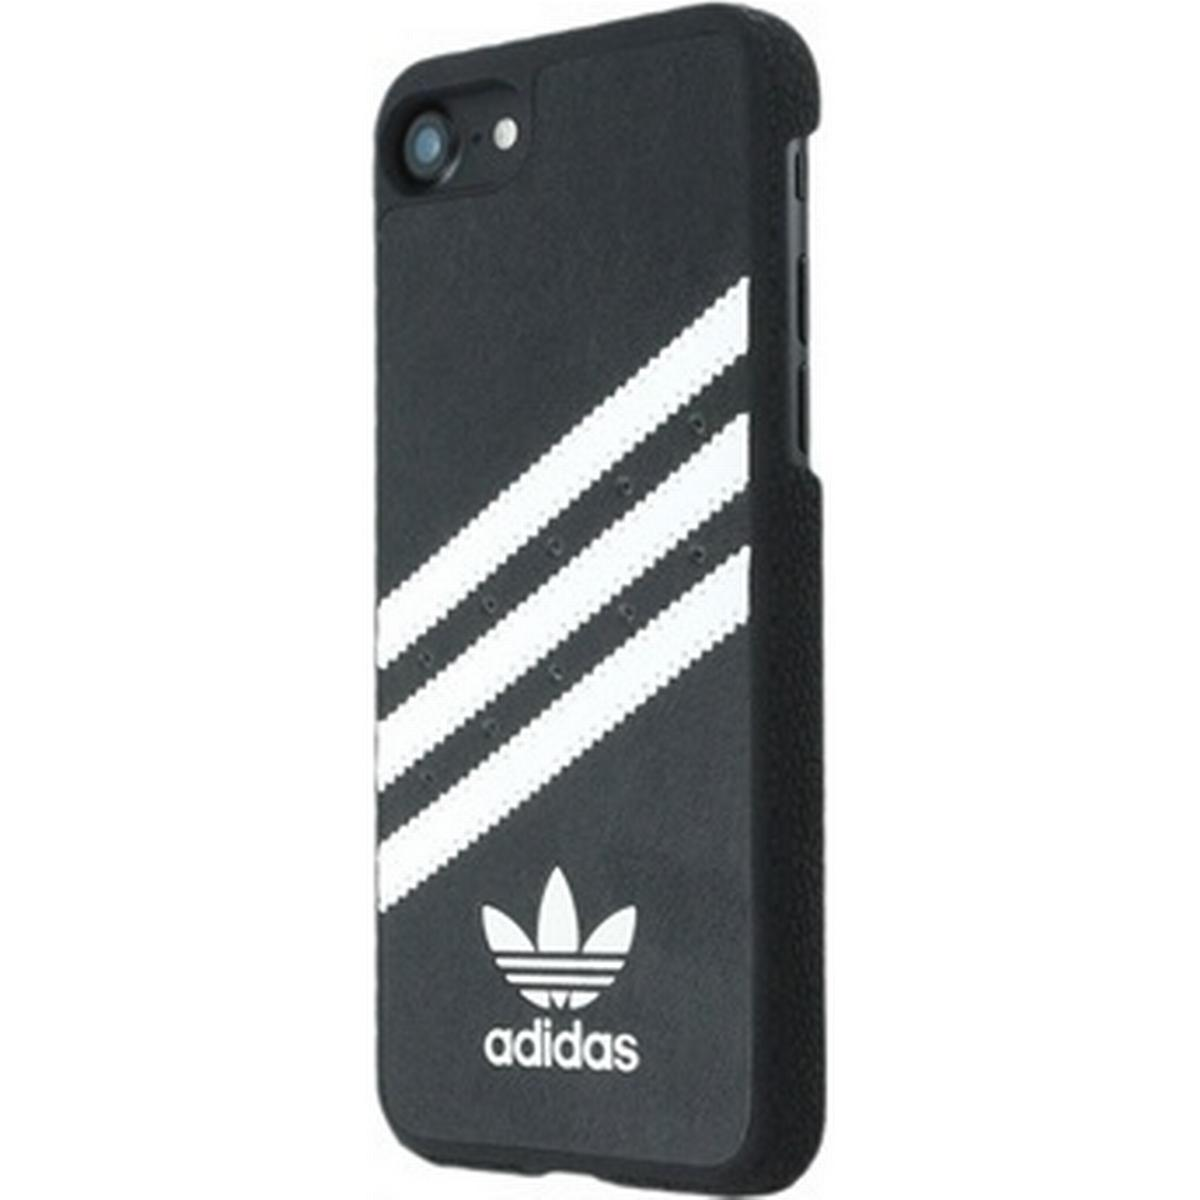 Details about adidas ORIGINALS MOBILE PHONE CASES BOOKLET APPLE IPHONE 6 6S 7 8 PLUS + NEW